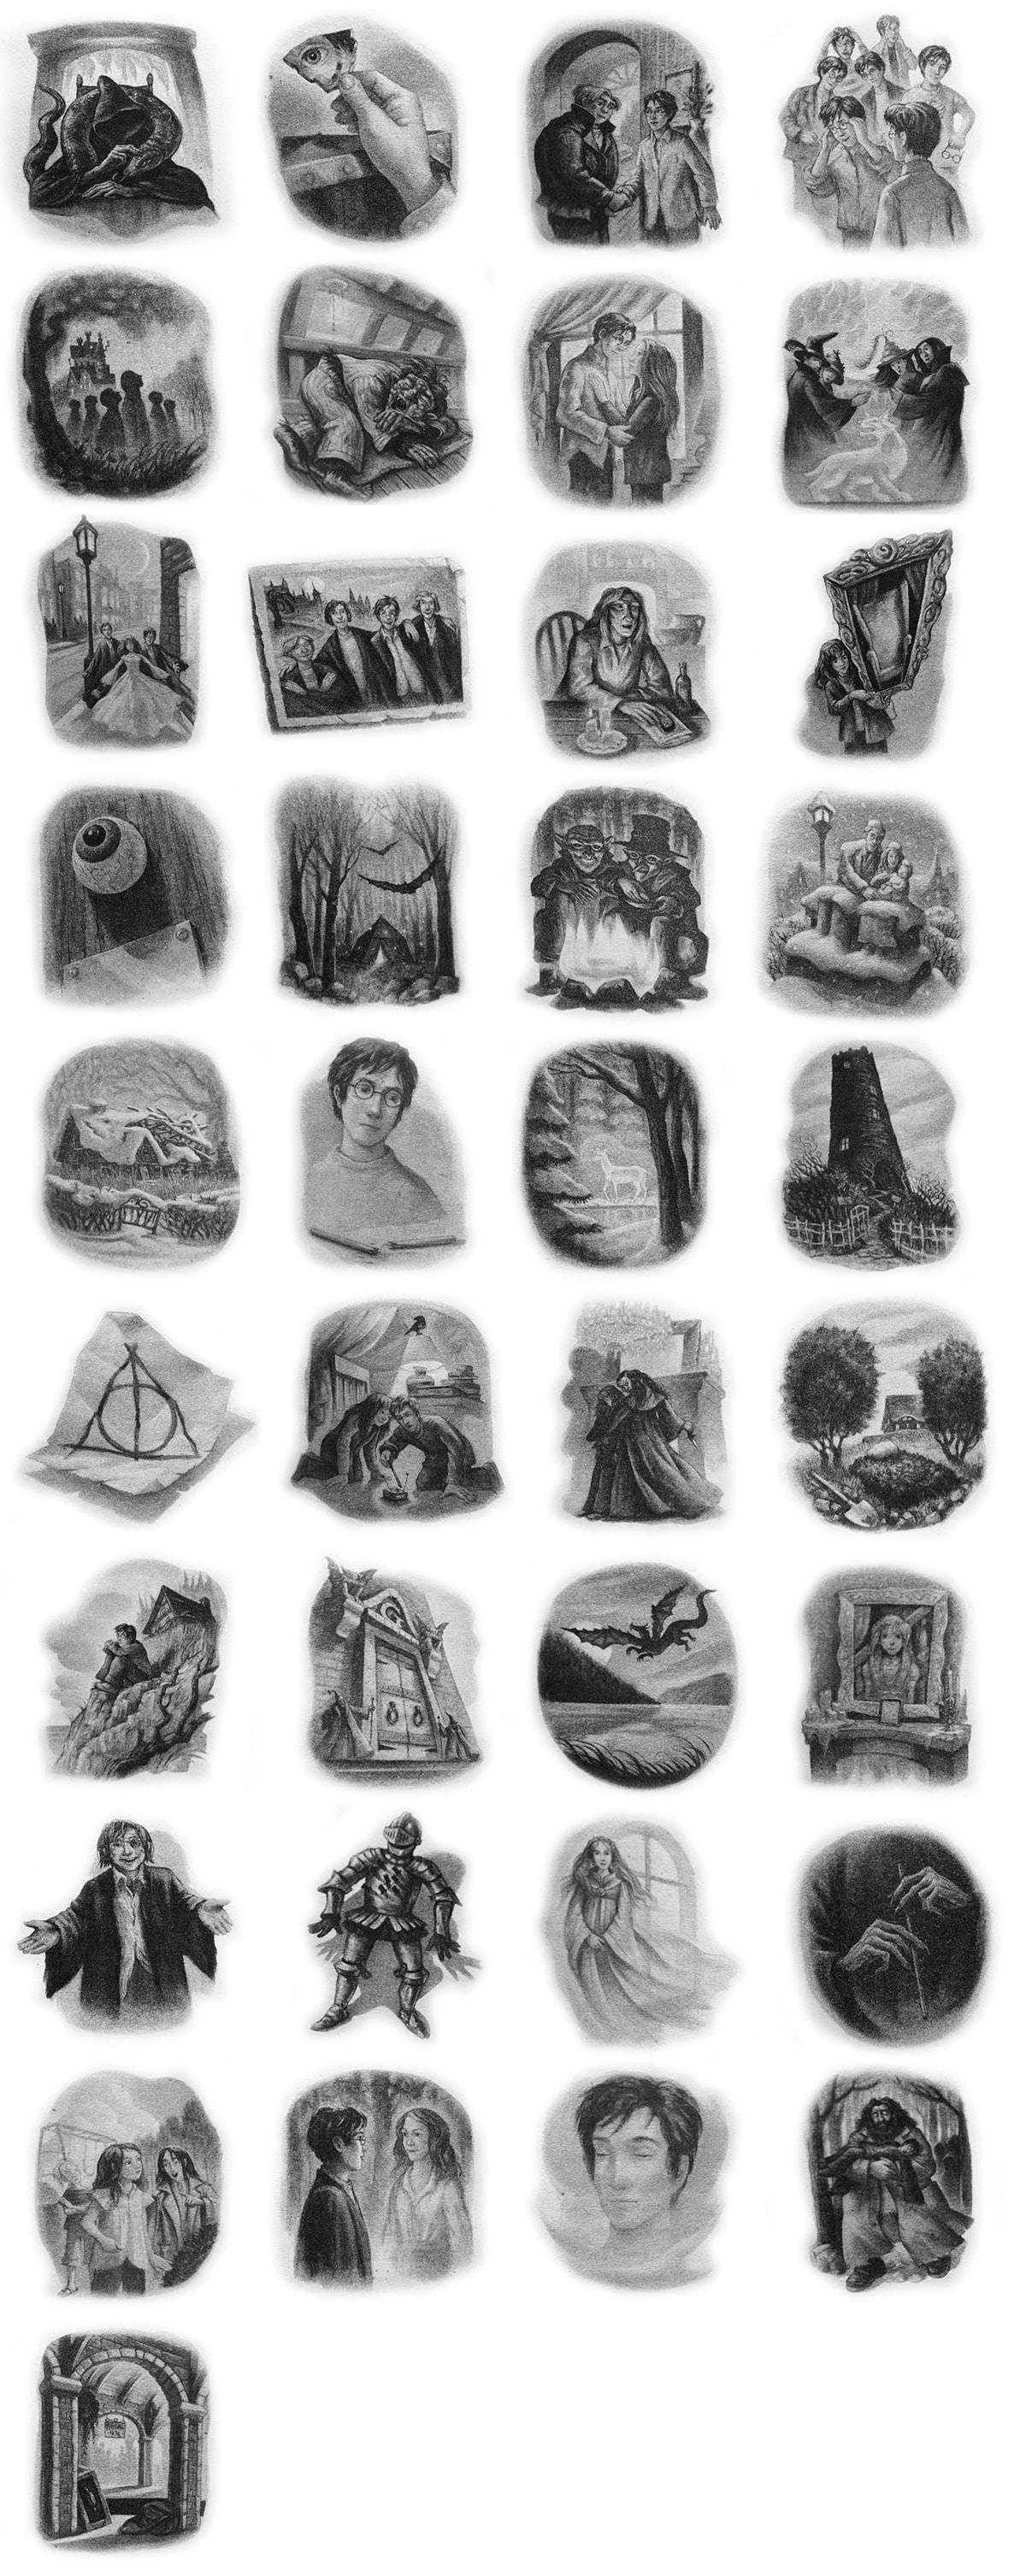 Every 'Deathly Hallows' chapter illustration.